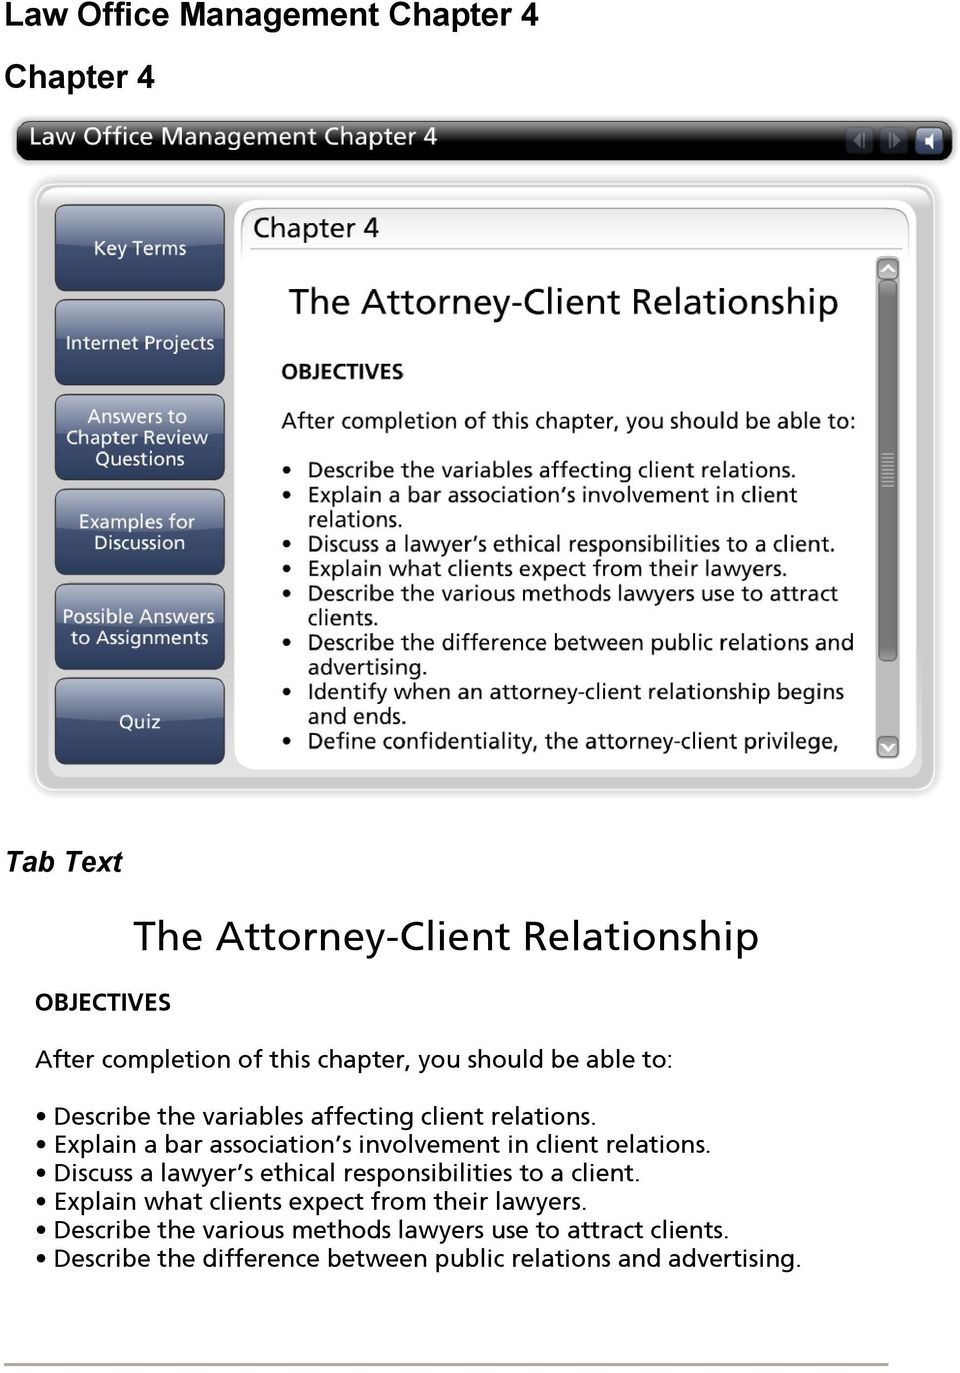 Explain a bar association s involvement in client relations. Discuss a lawyer s ethical responsibilities to a client.